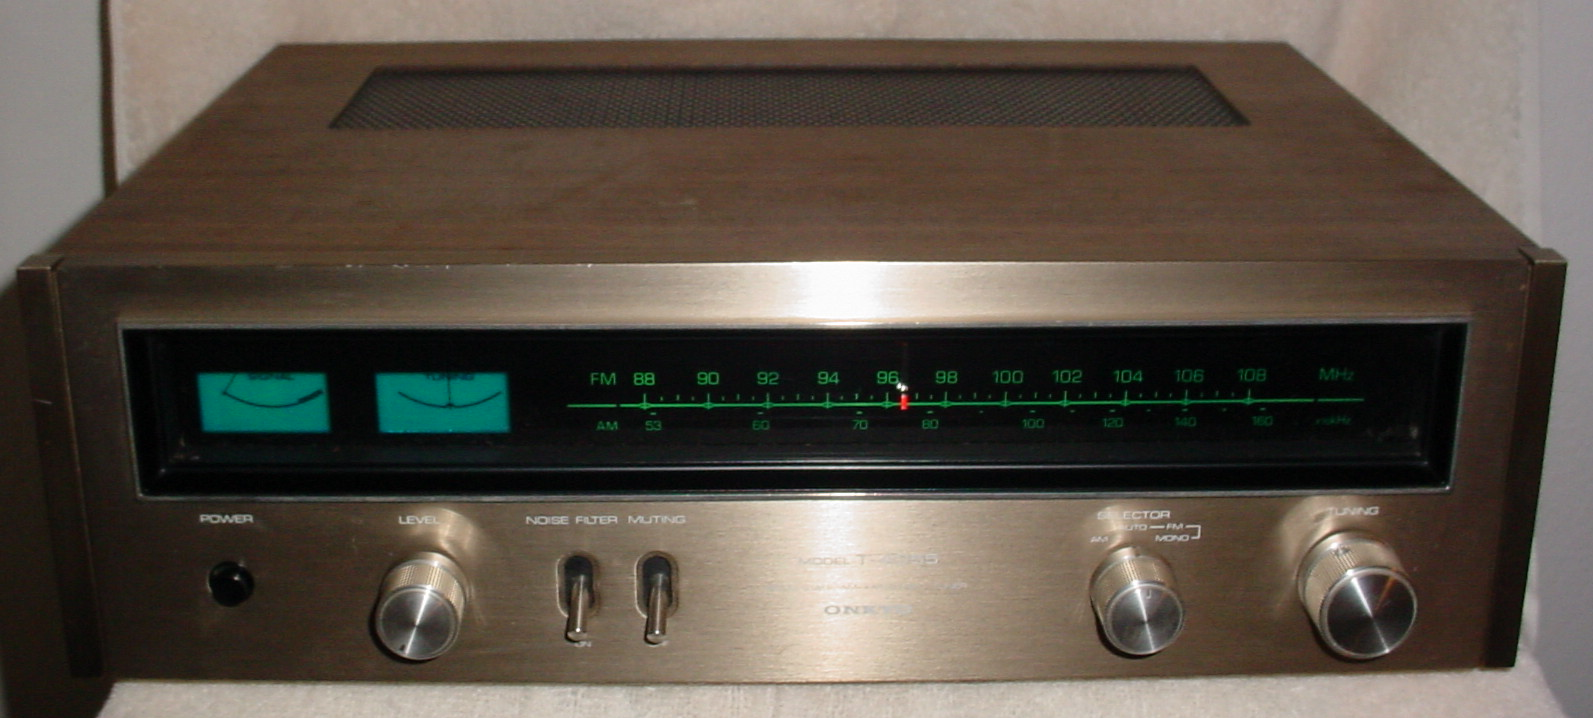 onkyo quartz synthesized tuner amplifier r1. the t-4055 is an older tuner that has some fans. our contributor walt says, \ onkyo quartz synthesized amplifier r1 p